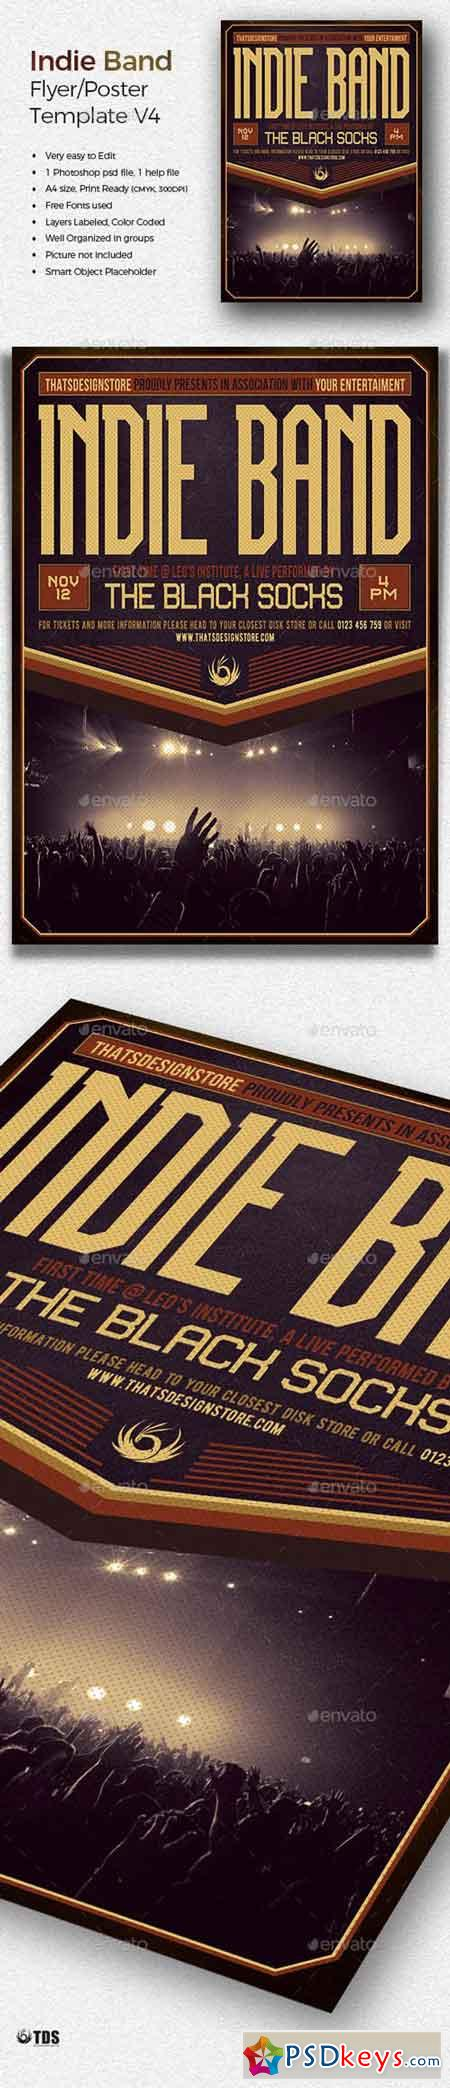 Indie Band Flyer Template V4 20098693